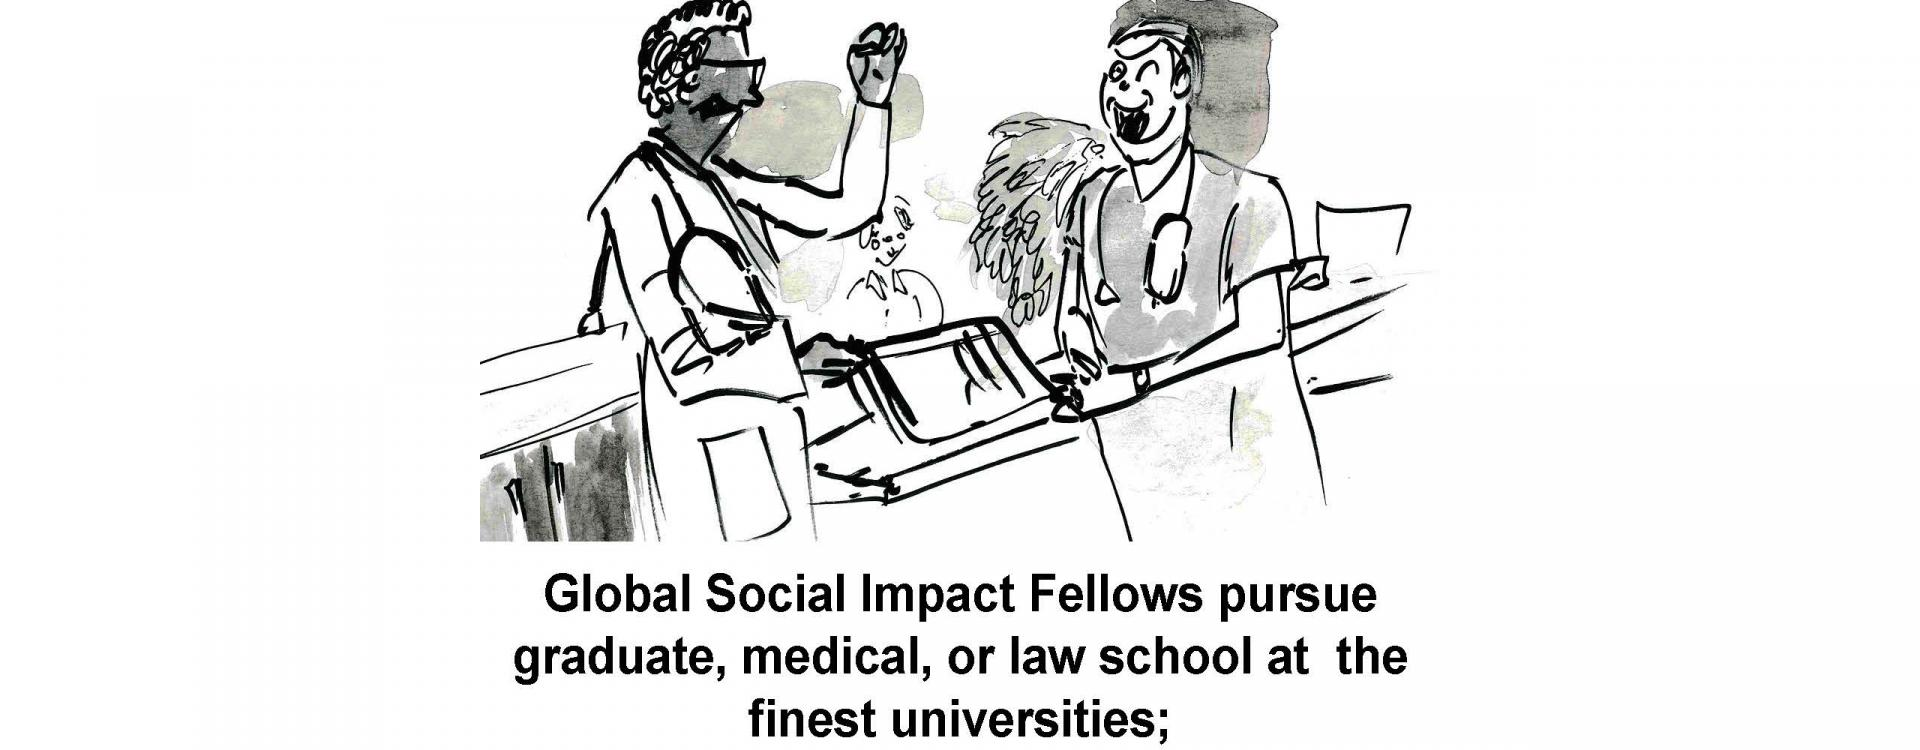 Global Social Impact Fellows pursue graduate, medical, or law school at the finest universities;